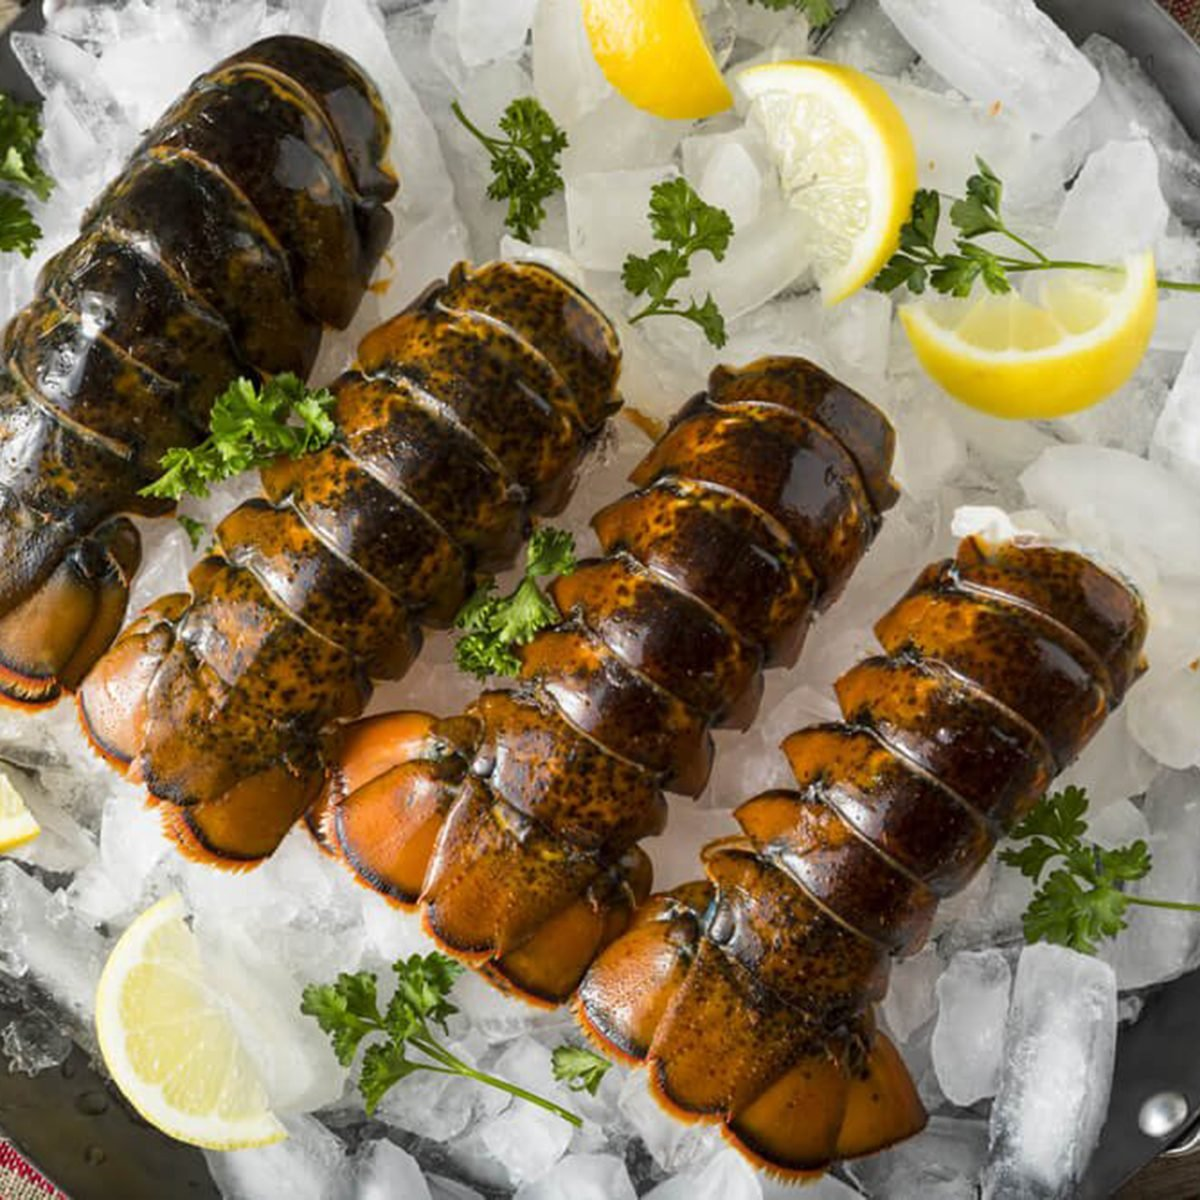 Lobster tails and lemons on ice